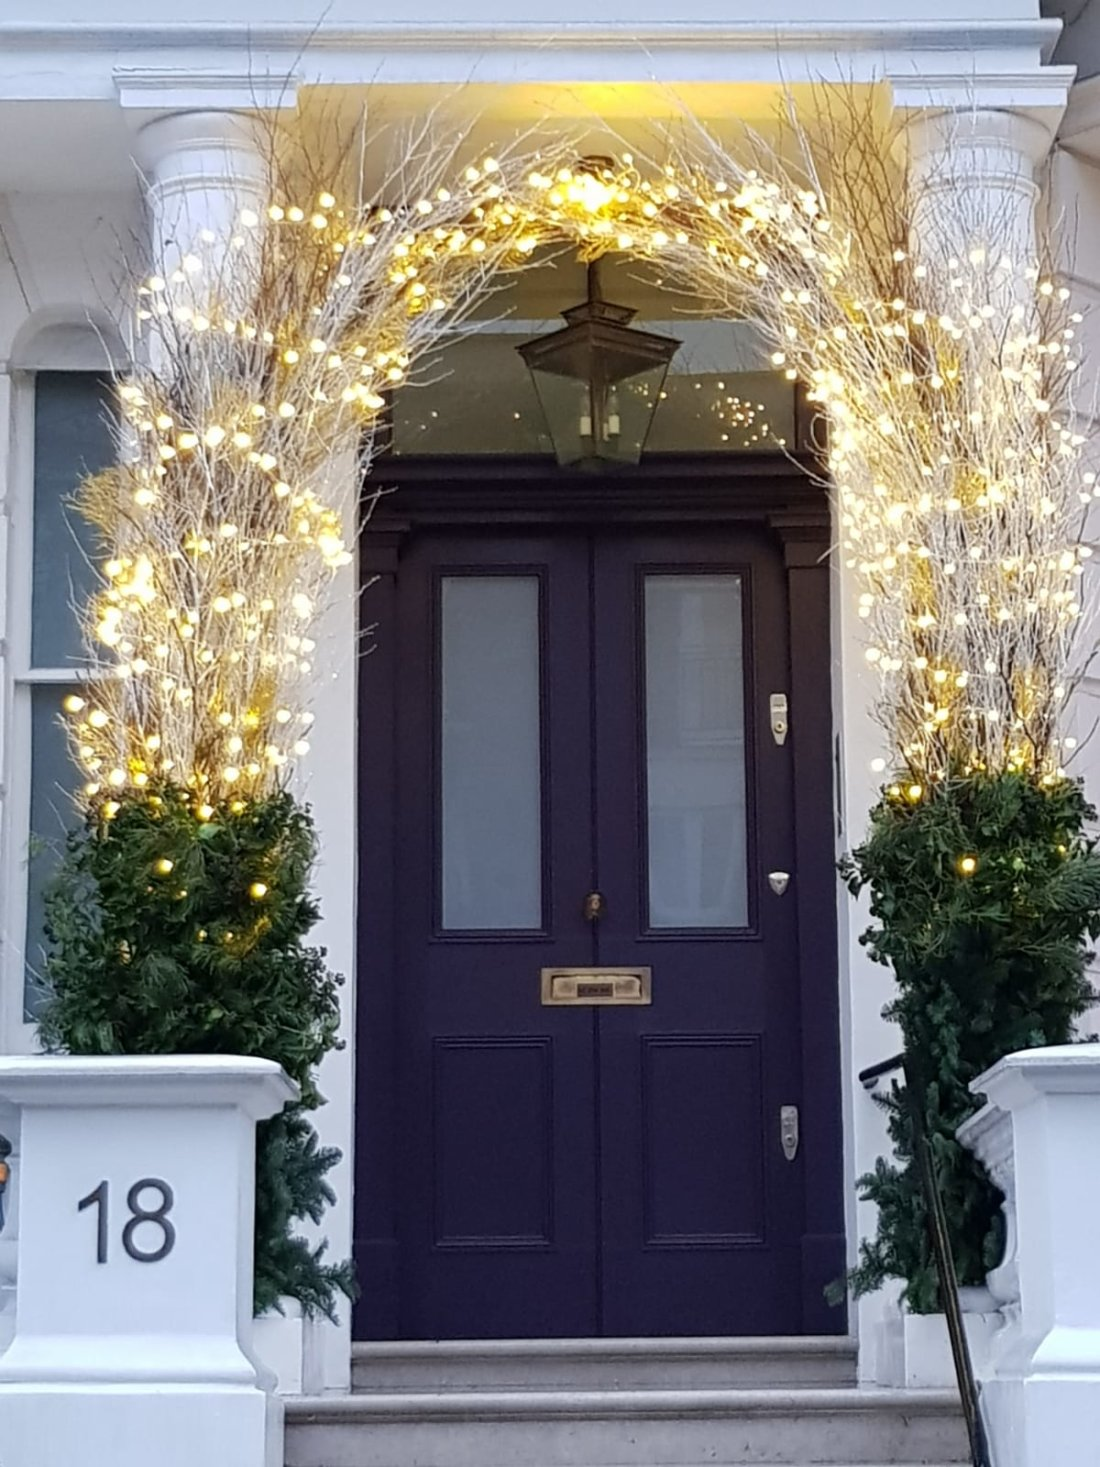 chelsea-private-home-xmas-arch